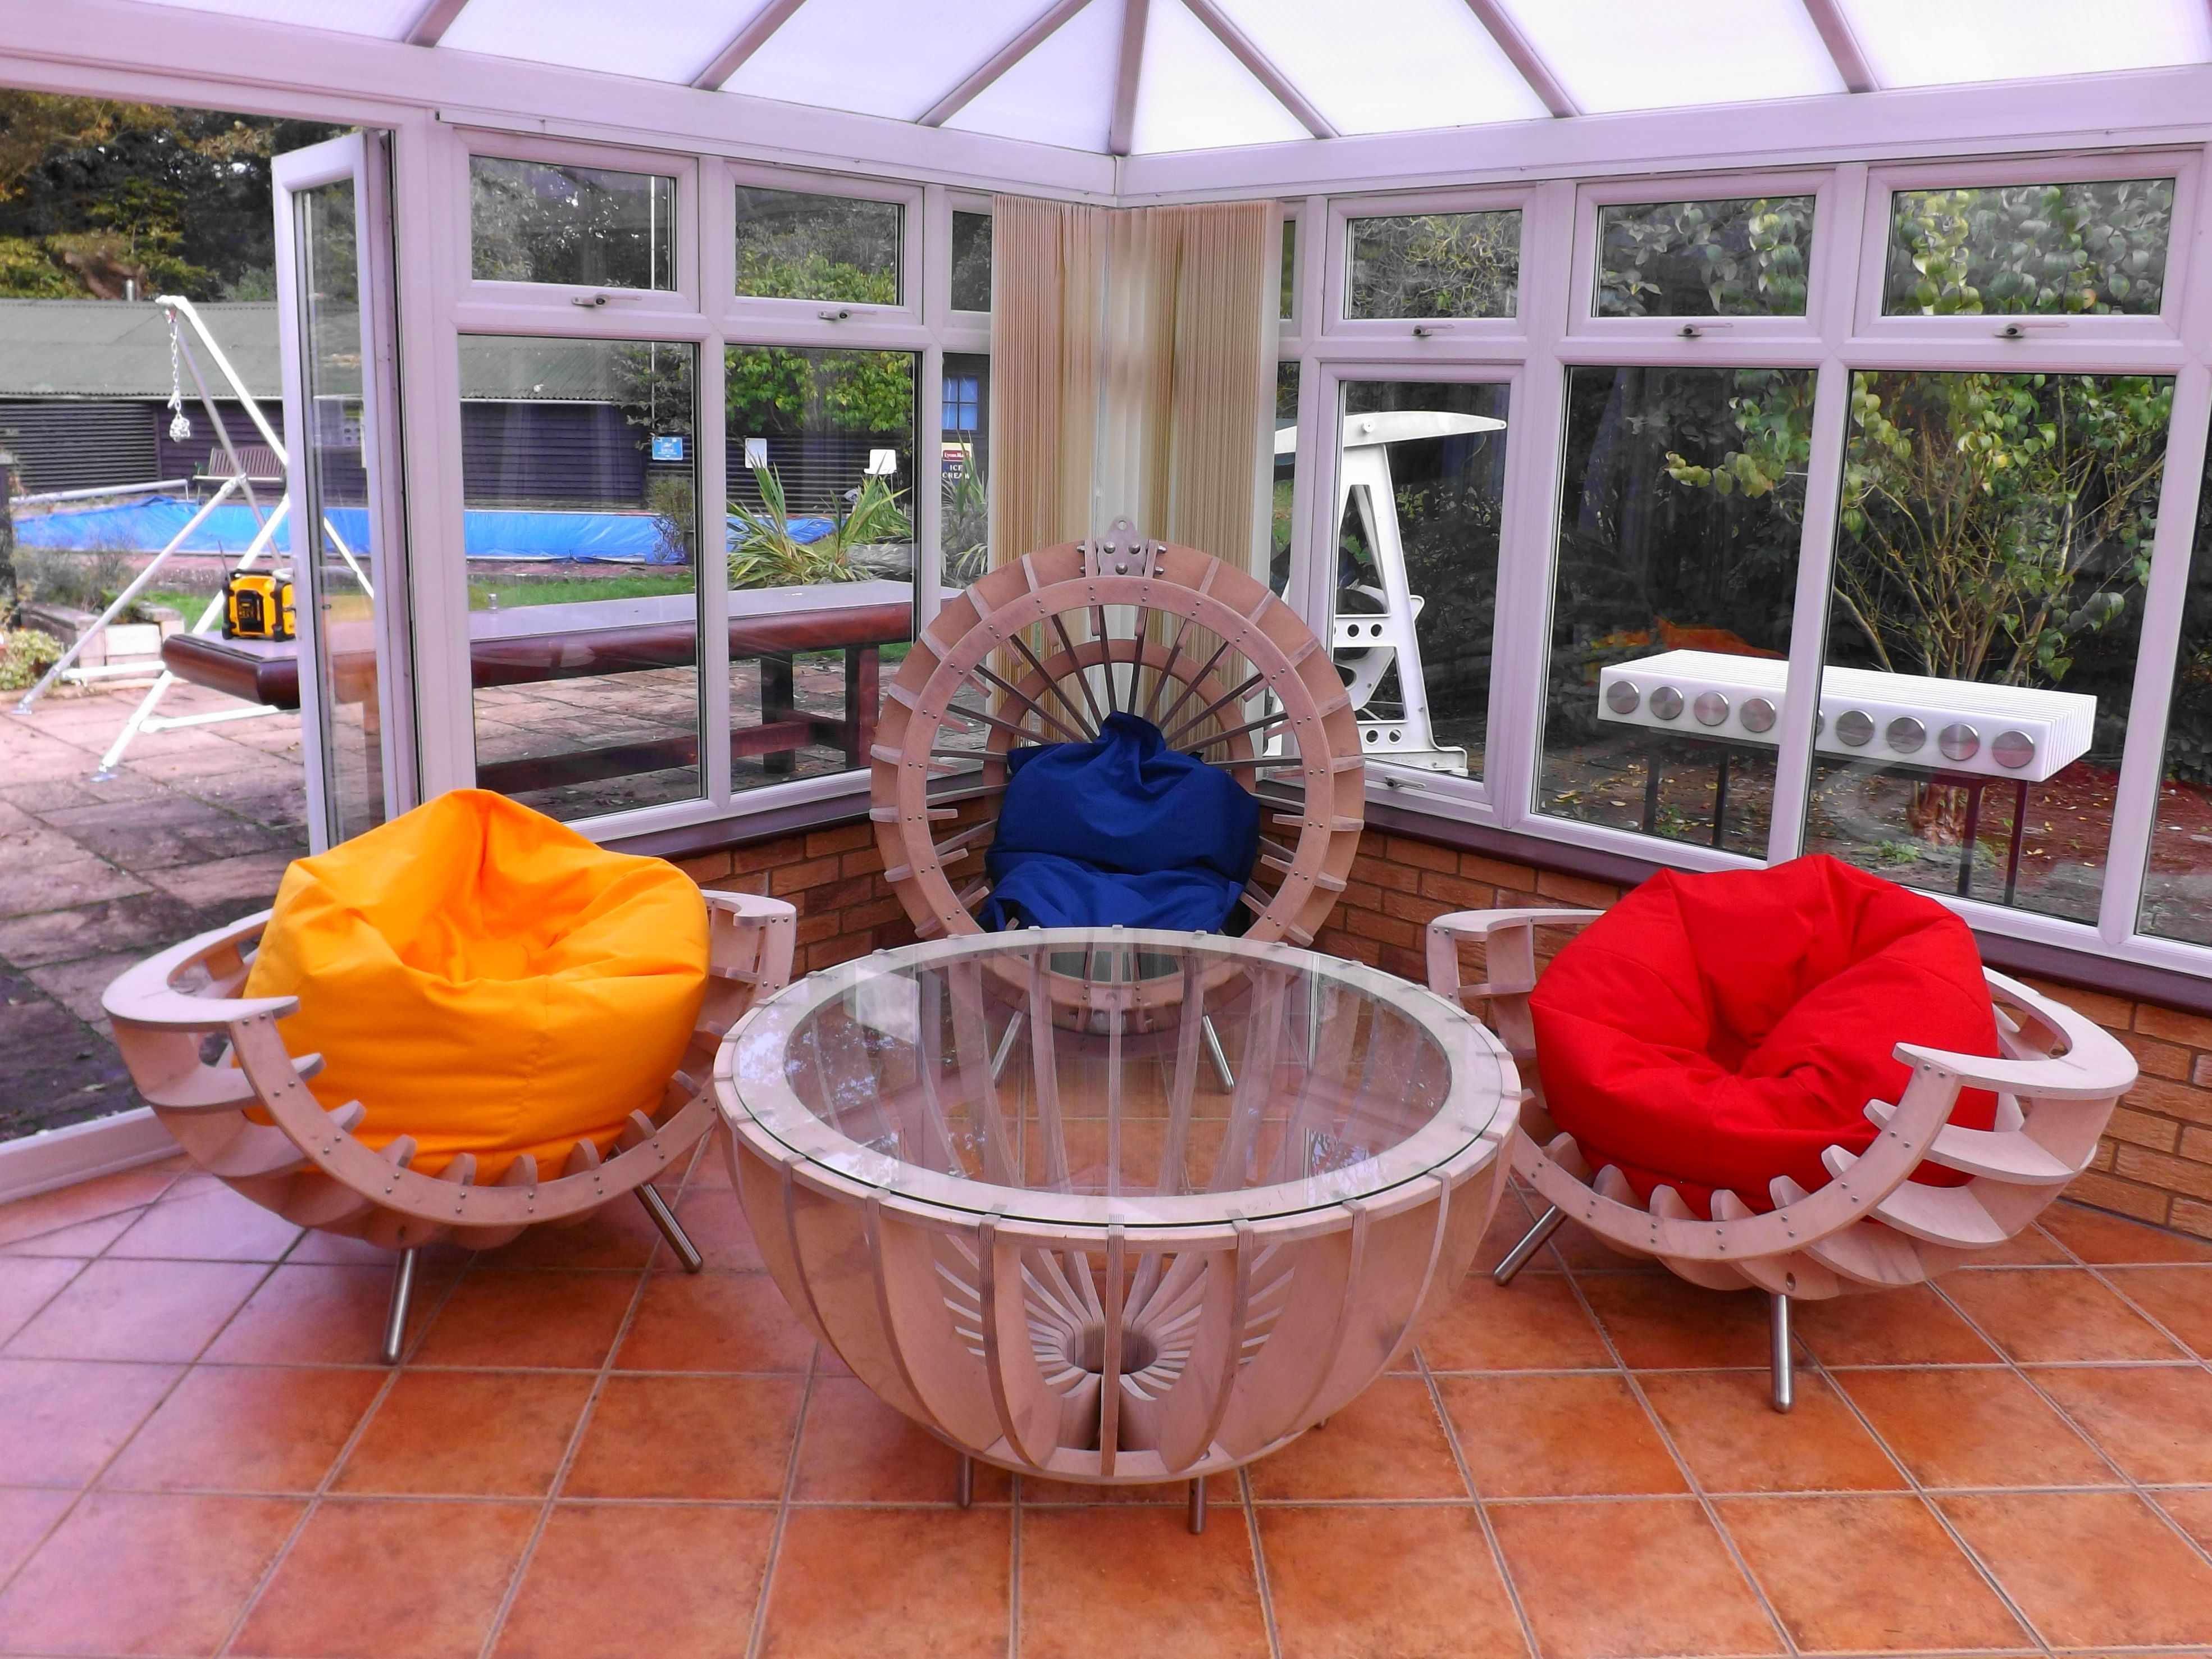 4 piece set of conservatory furniture two half sphere chairs 1 4 piece set of conservatory furniture two half sphere chairs 1 sphere chair geotapseo Image collections